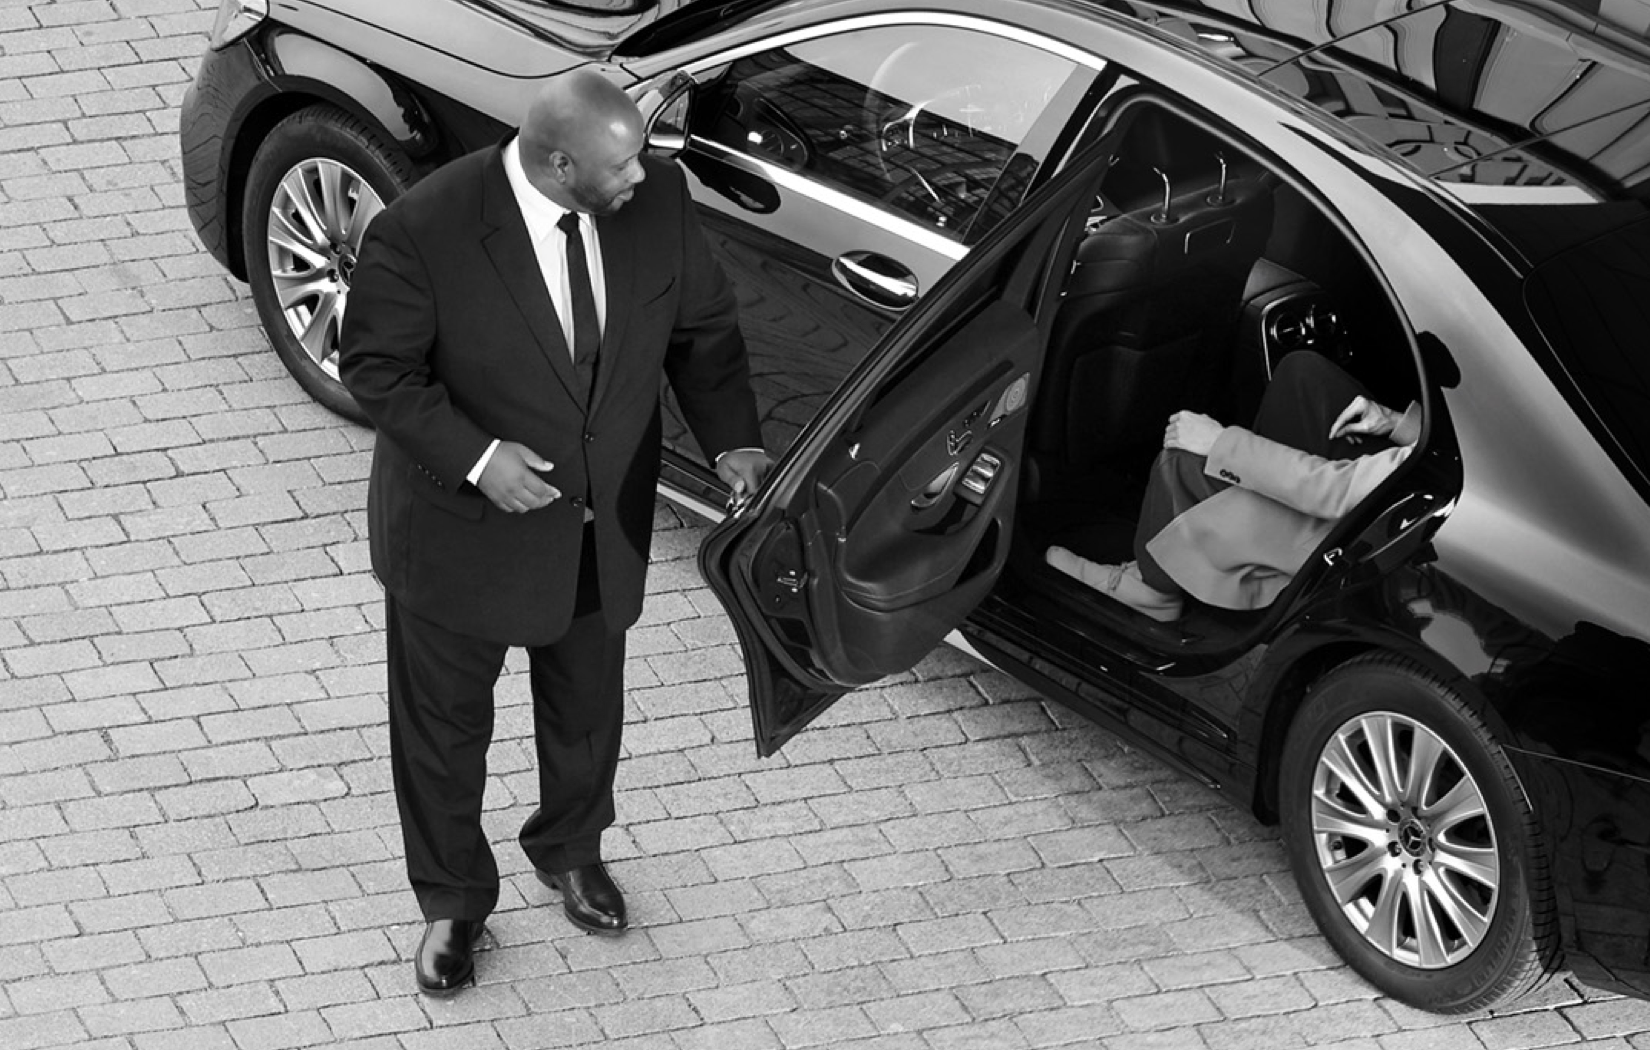 Hourly Cheap Limo Car Rentals Service In Boston Limo Airport Transportation Limousine